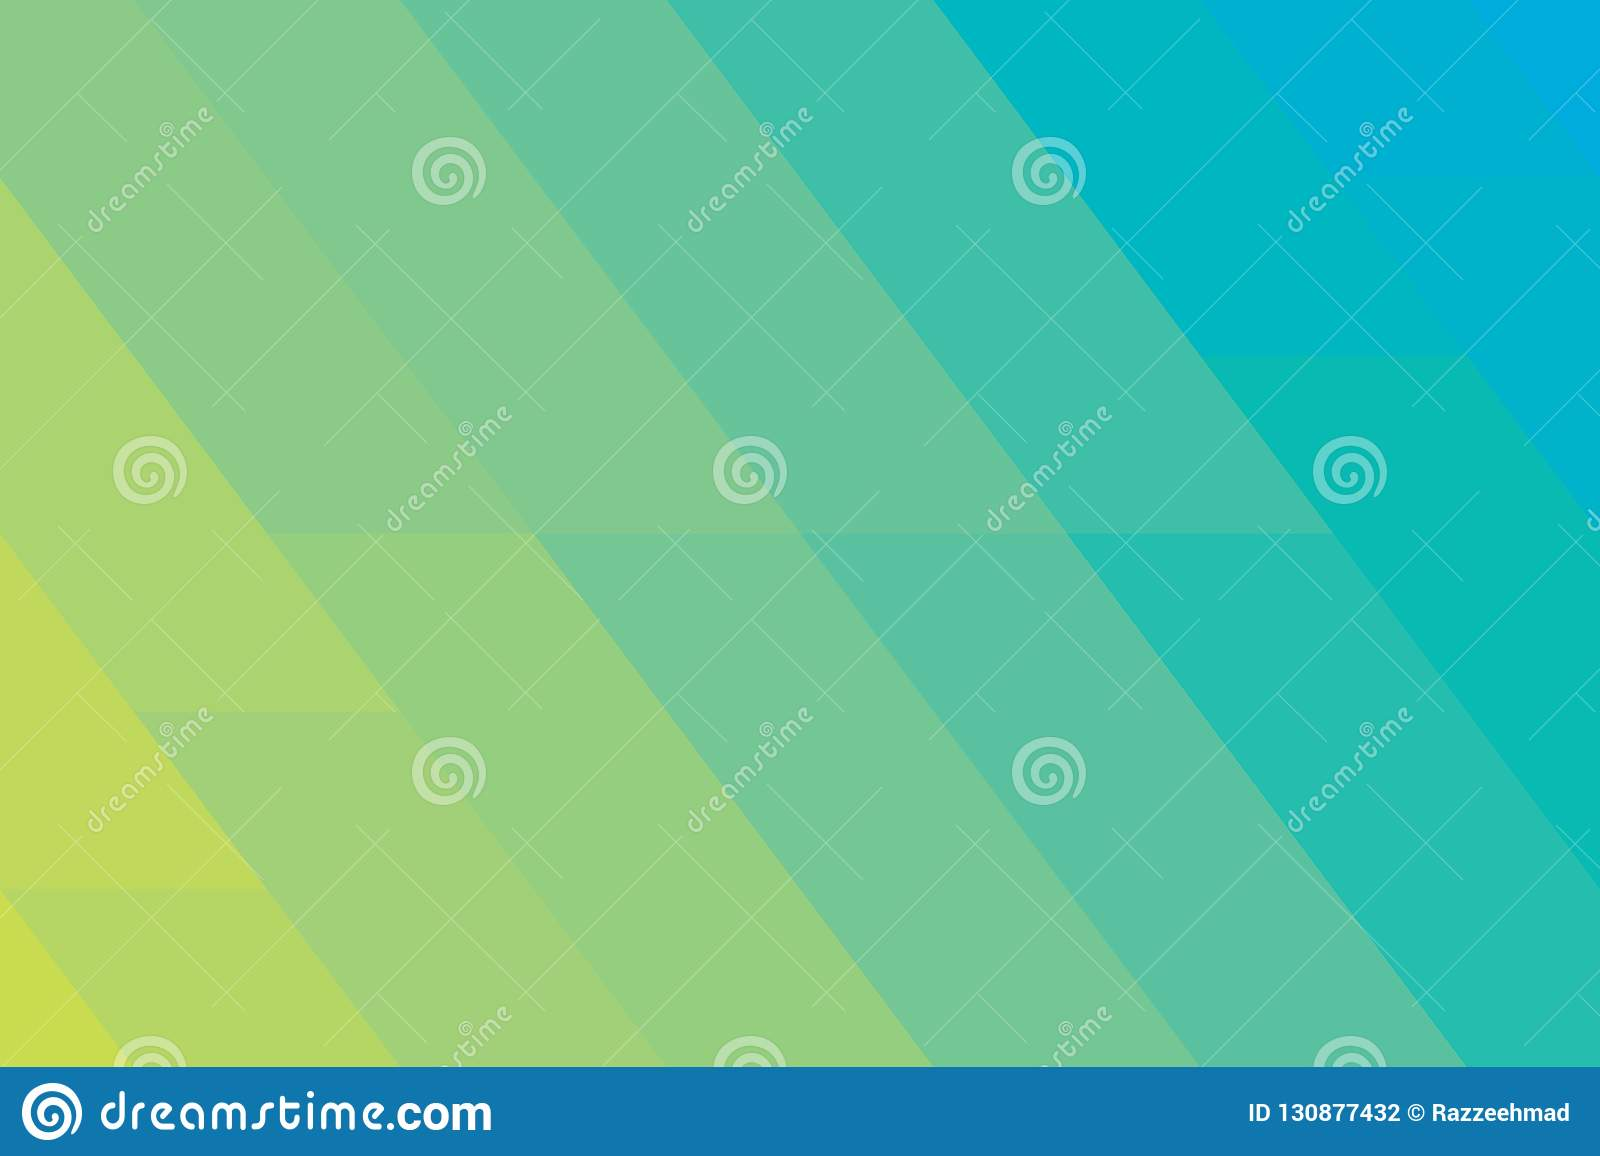 Wallpaper triangle background geomatric backdrop texture style gradation modern green and blue